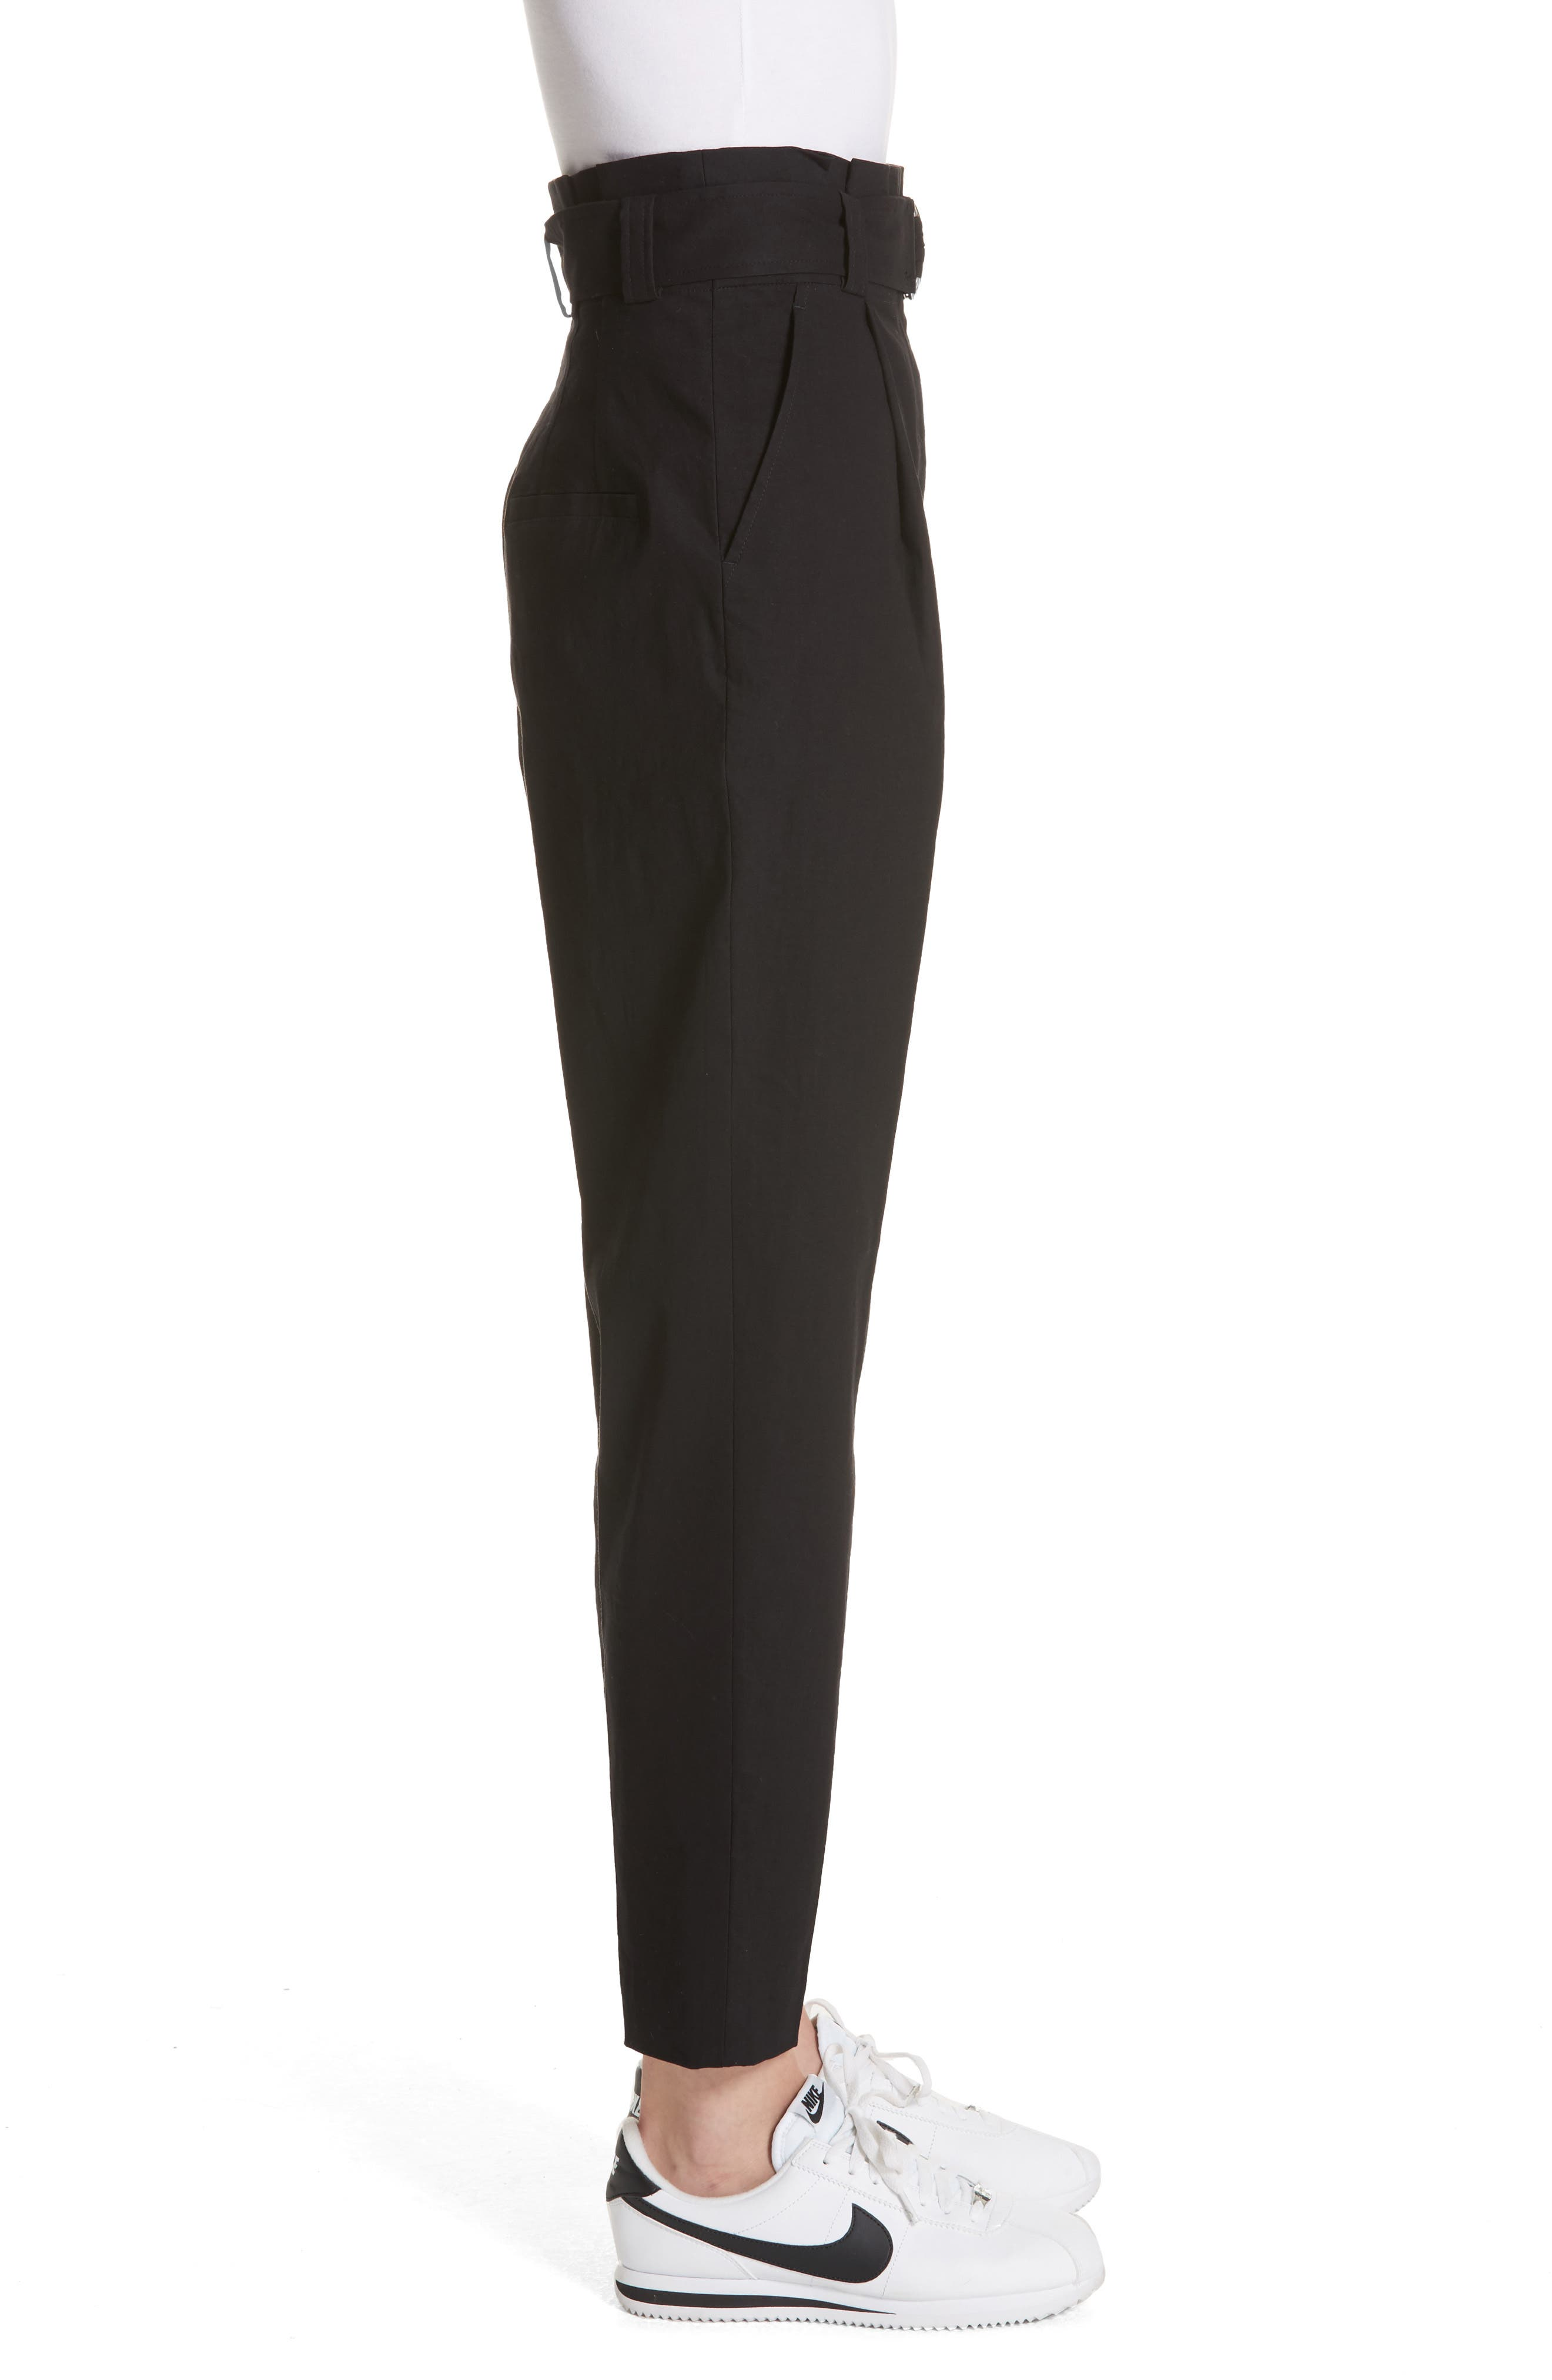 Diego High Waist Pants,                             Alternate thumbnail 3, color,                             Black